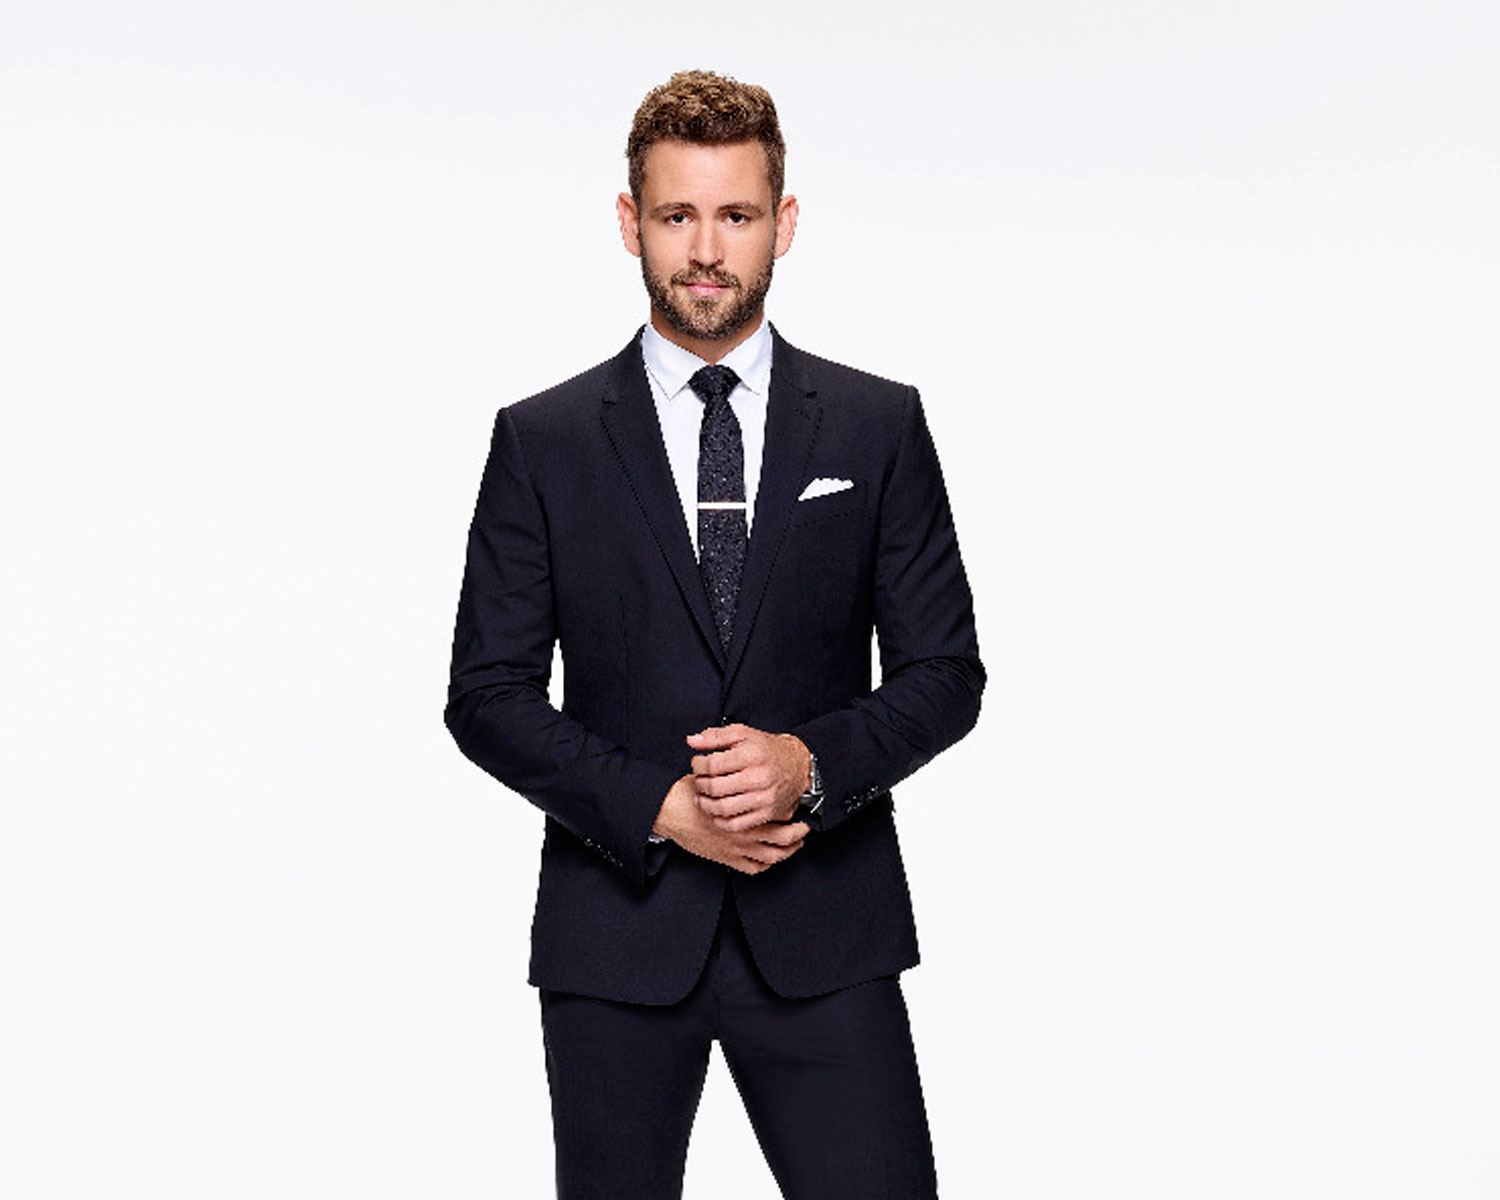 Bachelor Nick Viall